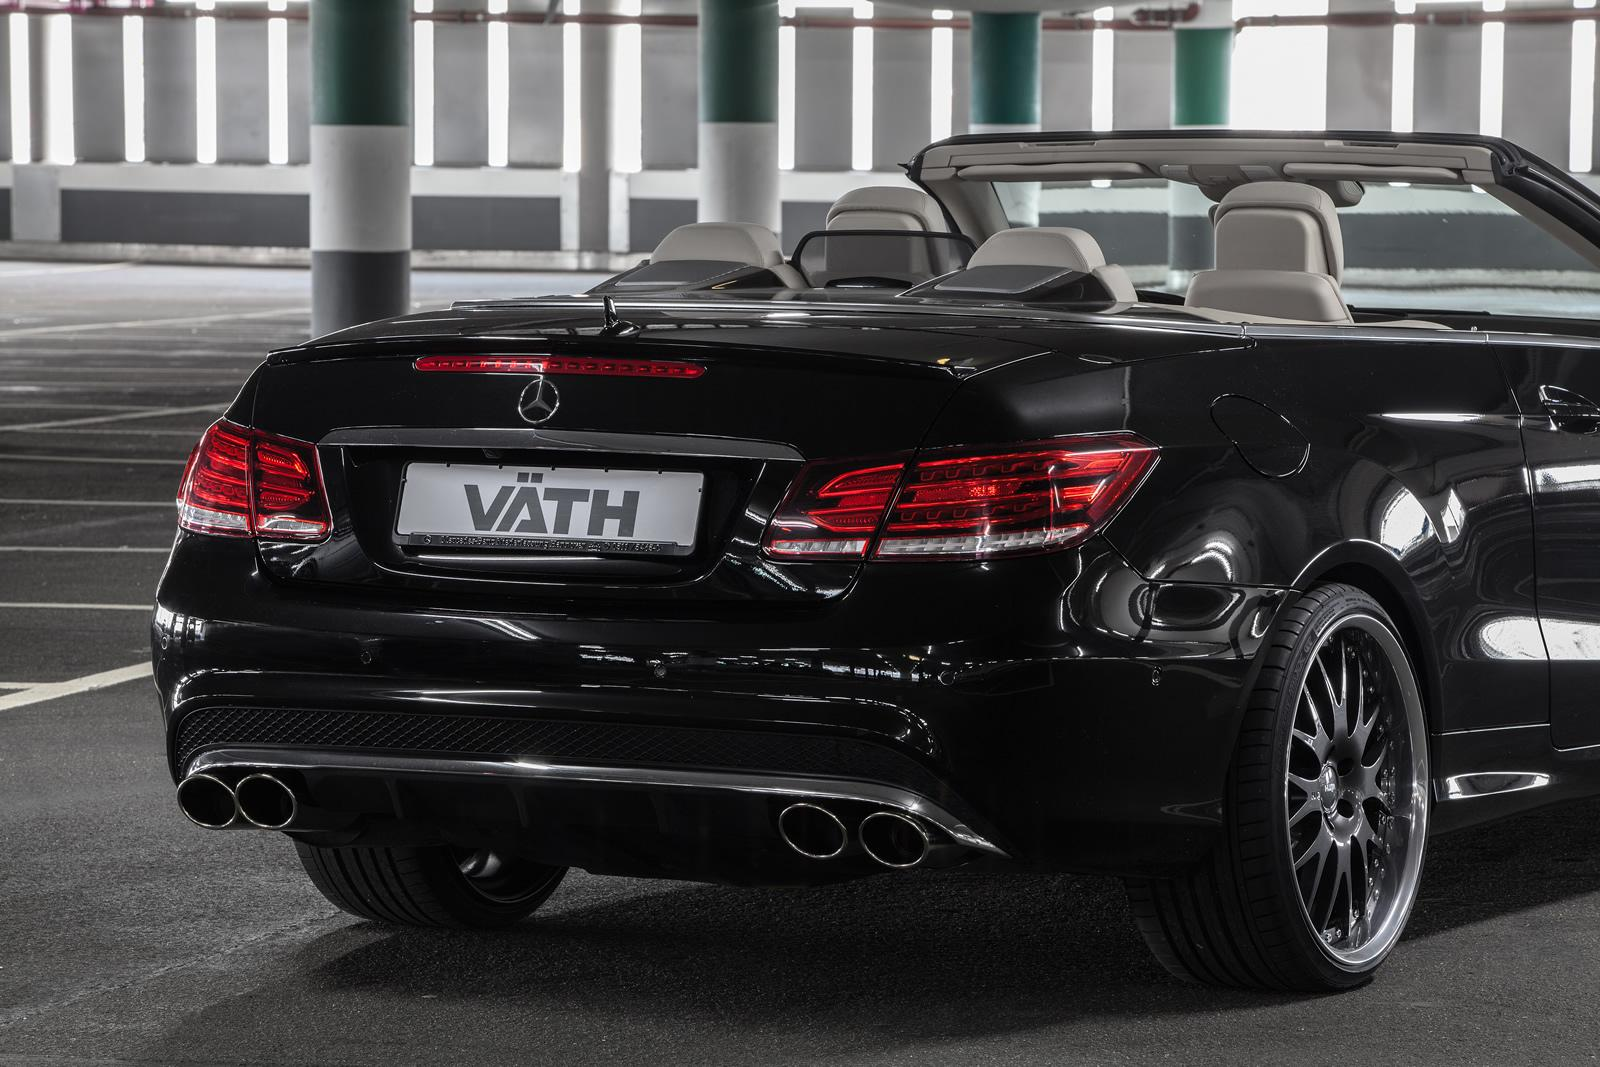 Mercedes Benz E500 Cabriolet Receives 550 Hp From Vath